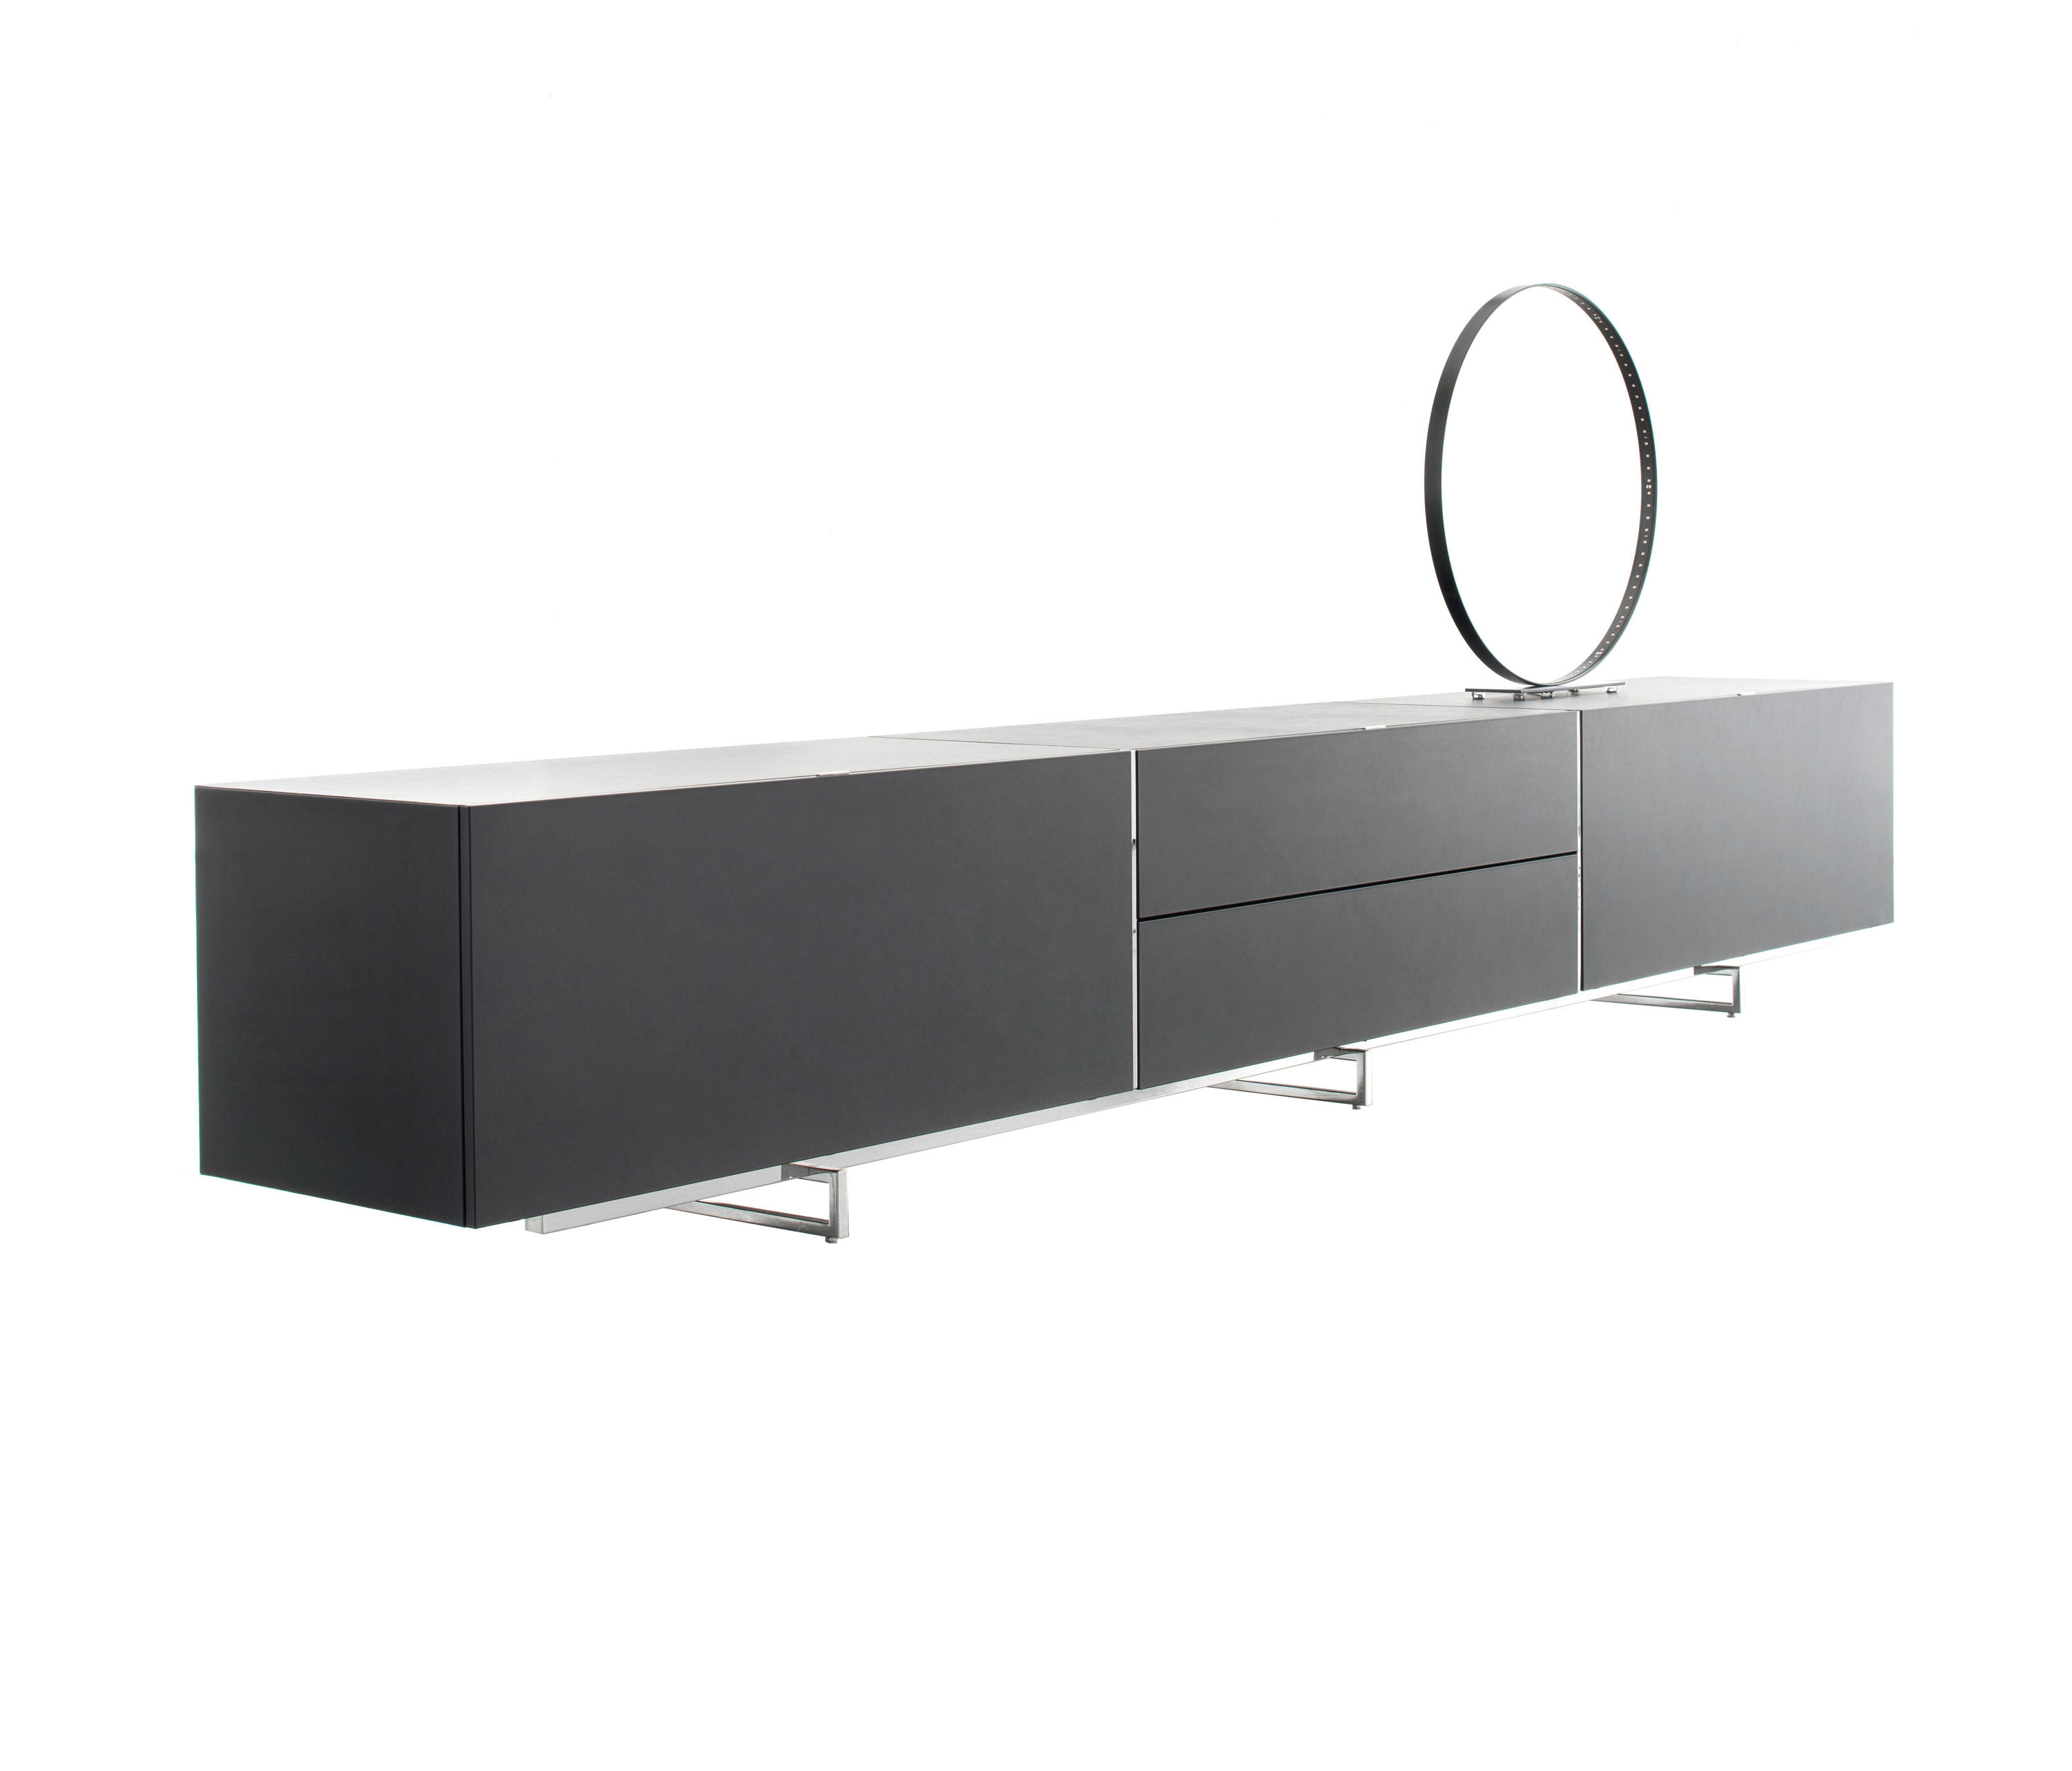 Lowboard hifi  MULTIMEDIA SIDEBOARDS - Hochwertige Designer MULTIMEDIA SIDEBOARDS ...